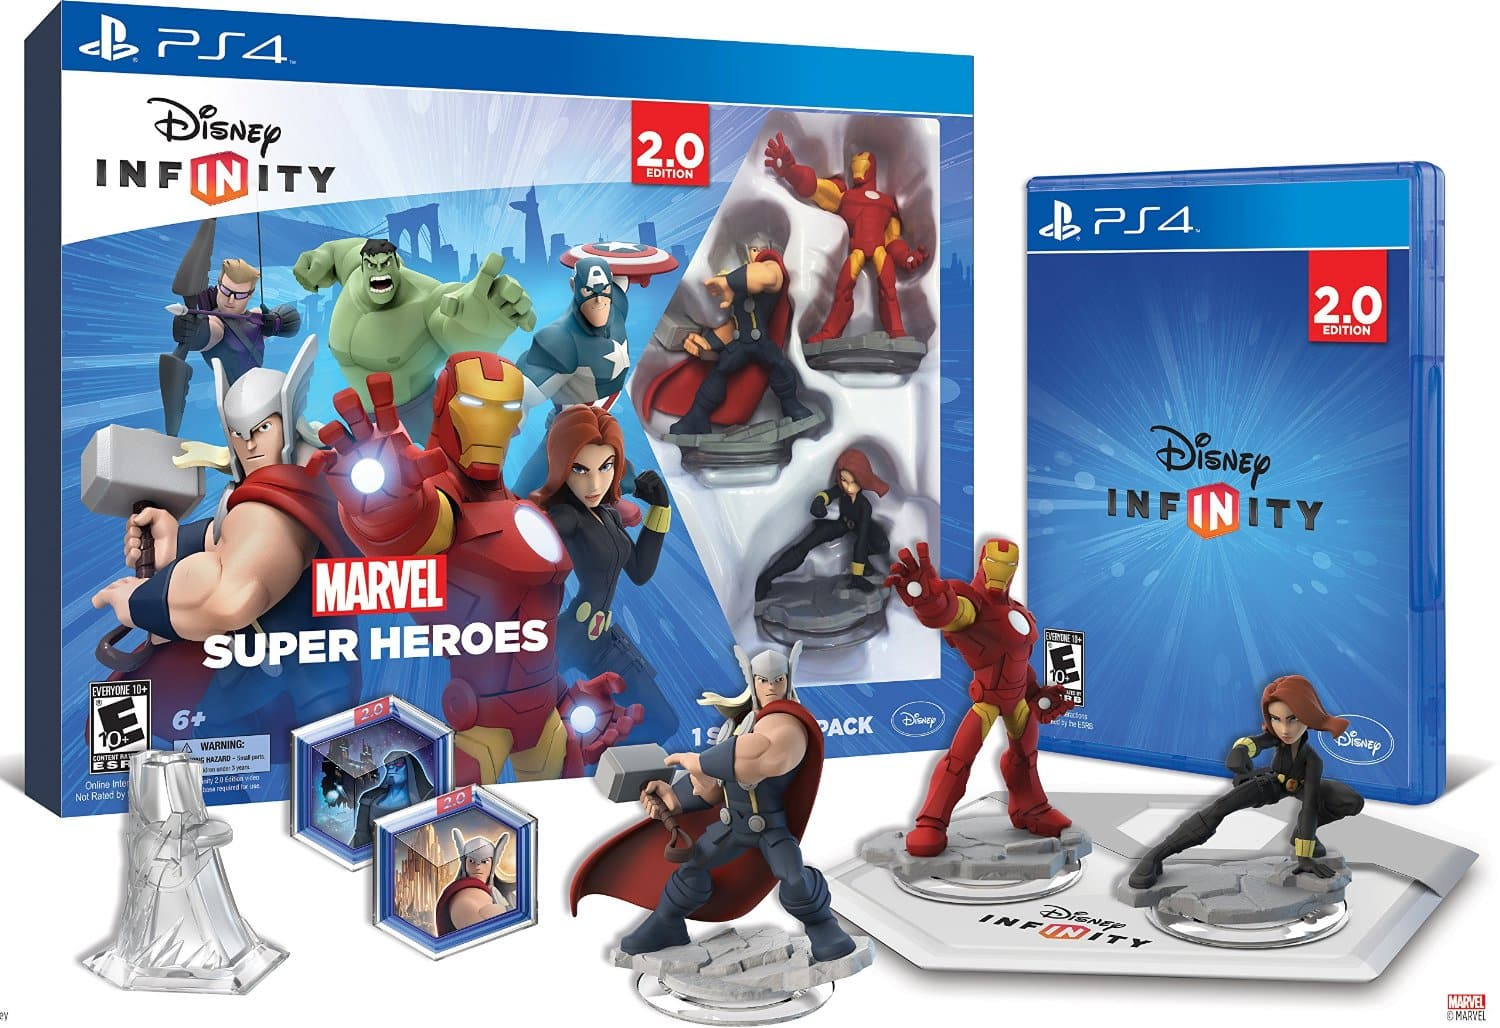 Disney Infinity Starter Packs (Various Systems)  $40 + Free Shipping on Orders $49+